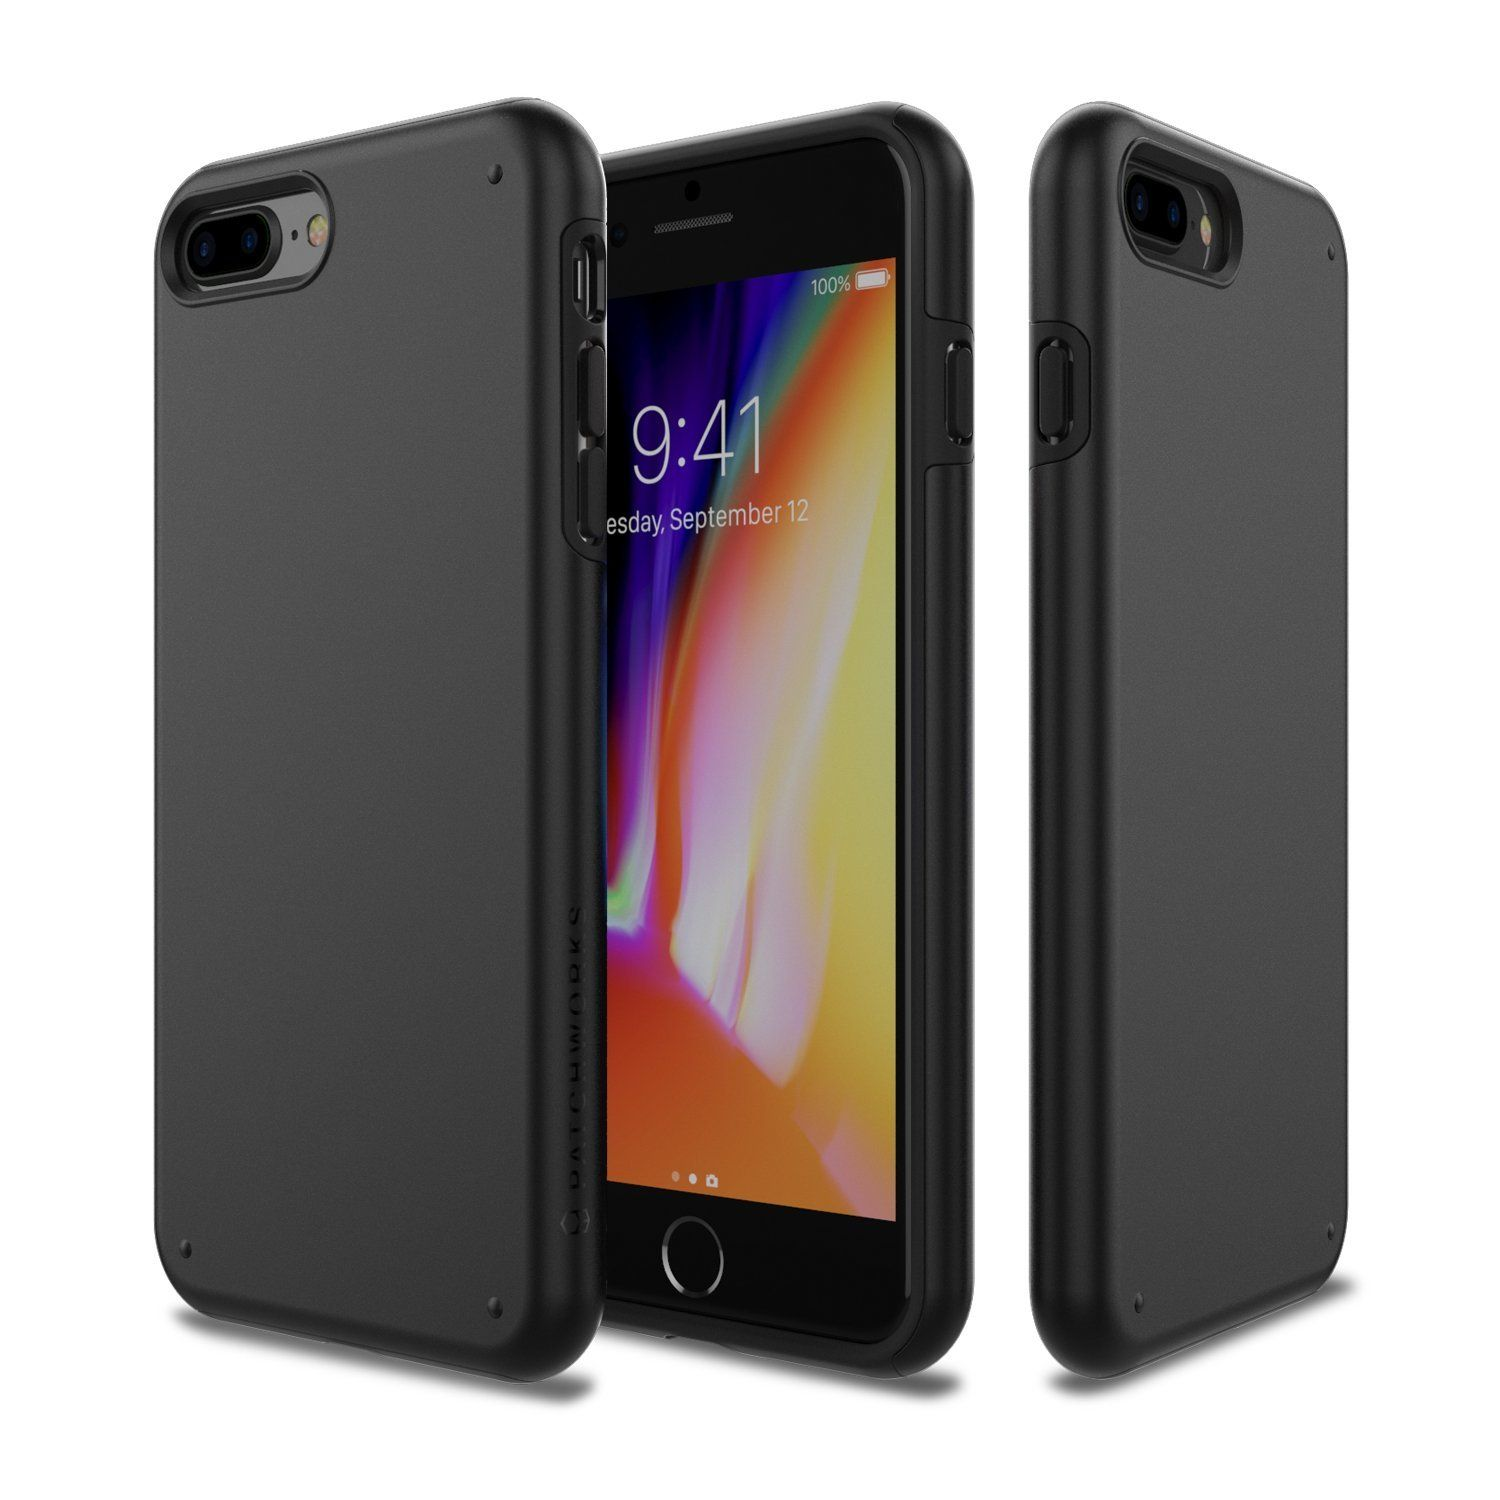 Iphone 8 Plus Case Patchworks Chroma Series Hybrid Soft Inner Tpu Hard Matte Finish Pc Back Cover Military Grade Drop Tes Iphone 7 Plus Iphone Iphone 8 Plus